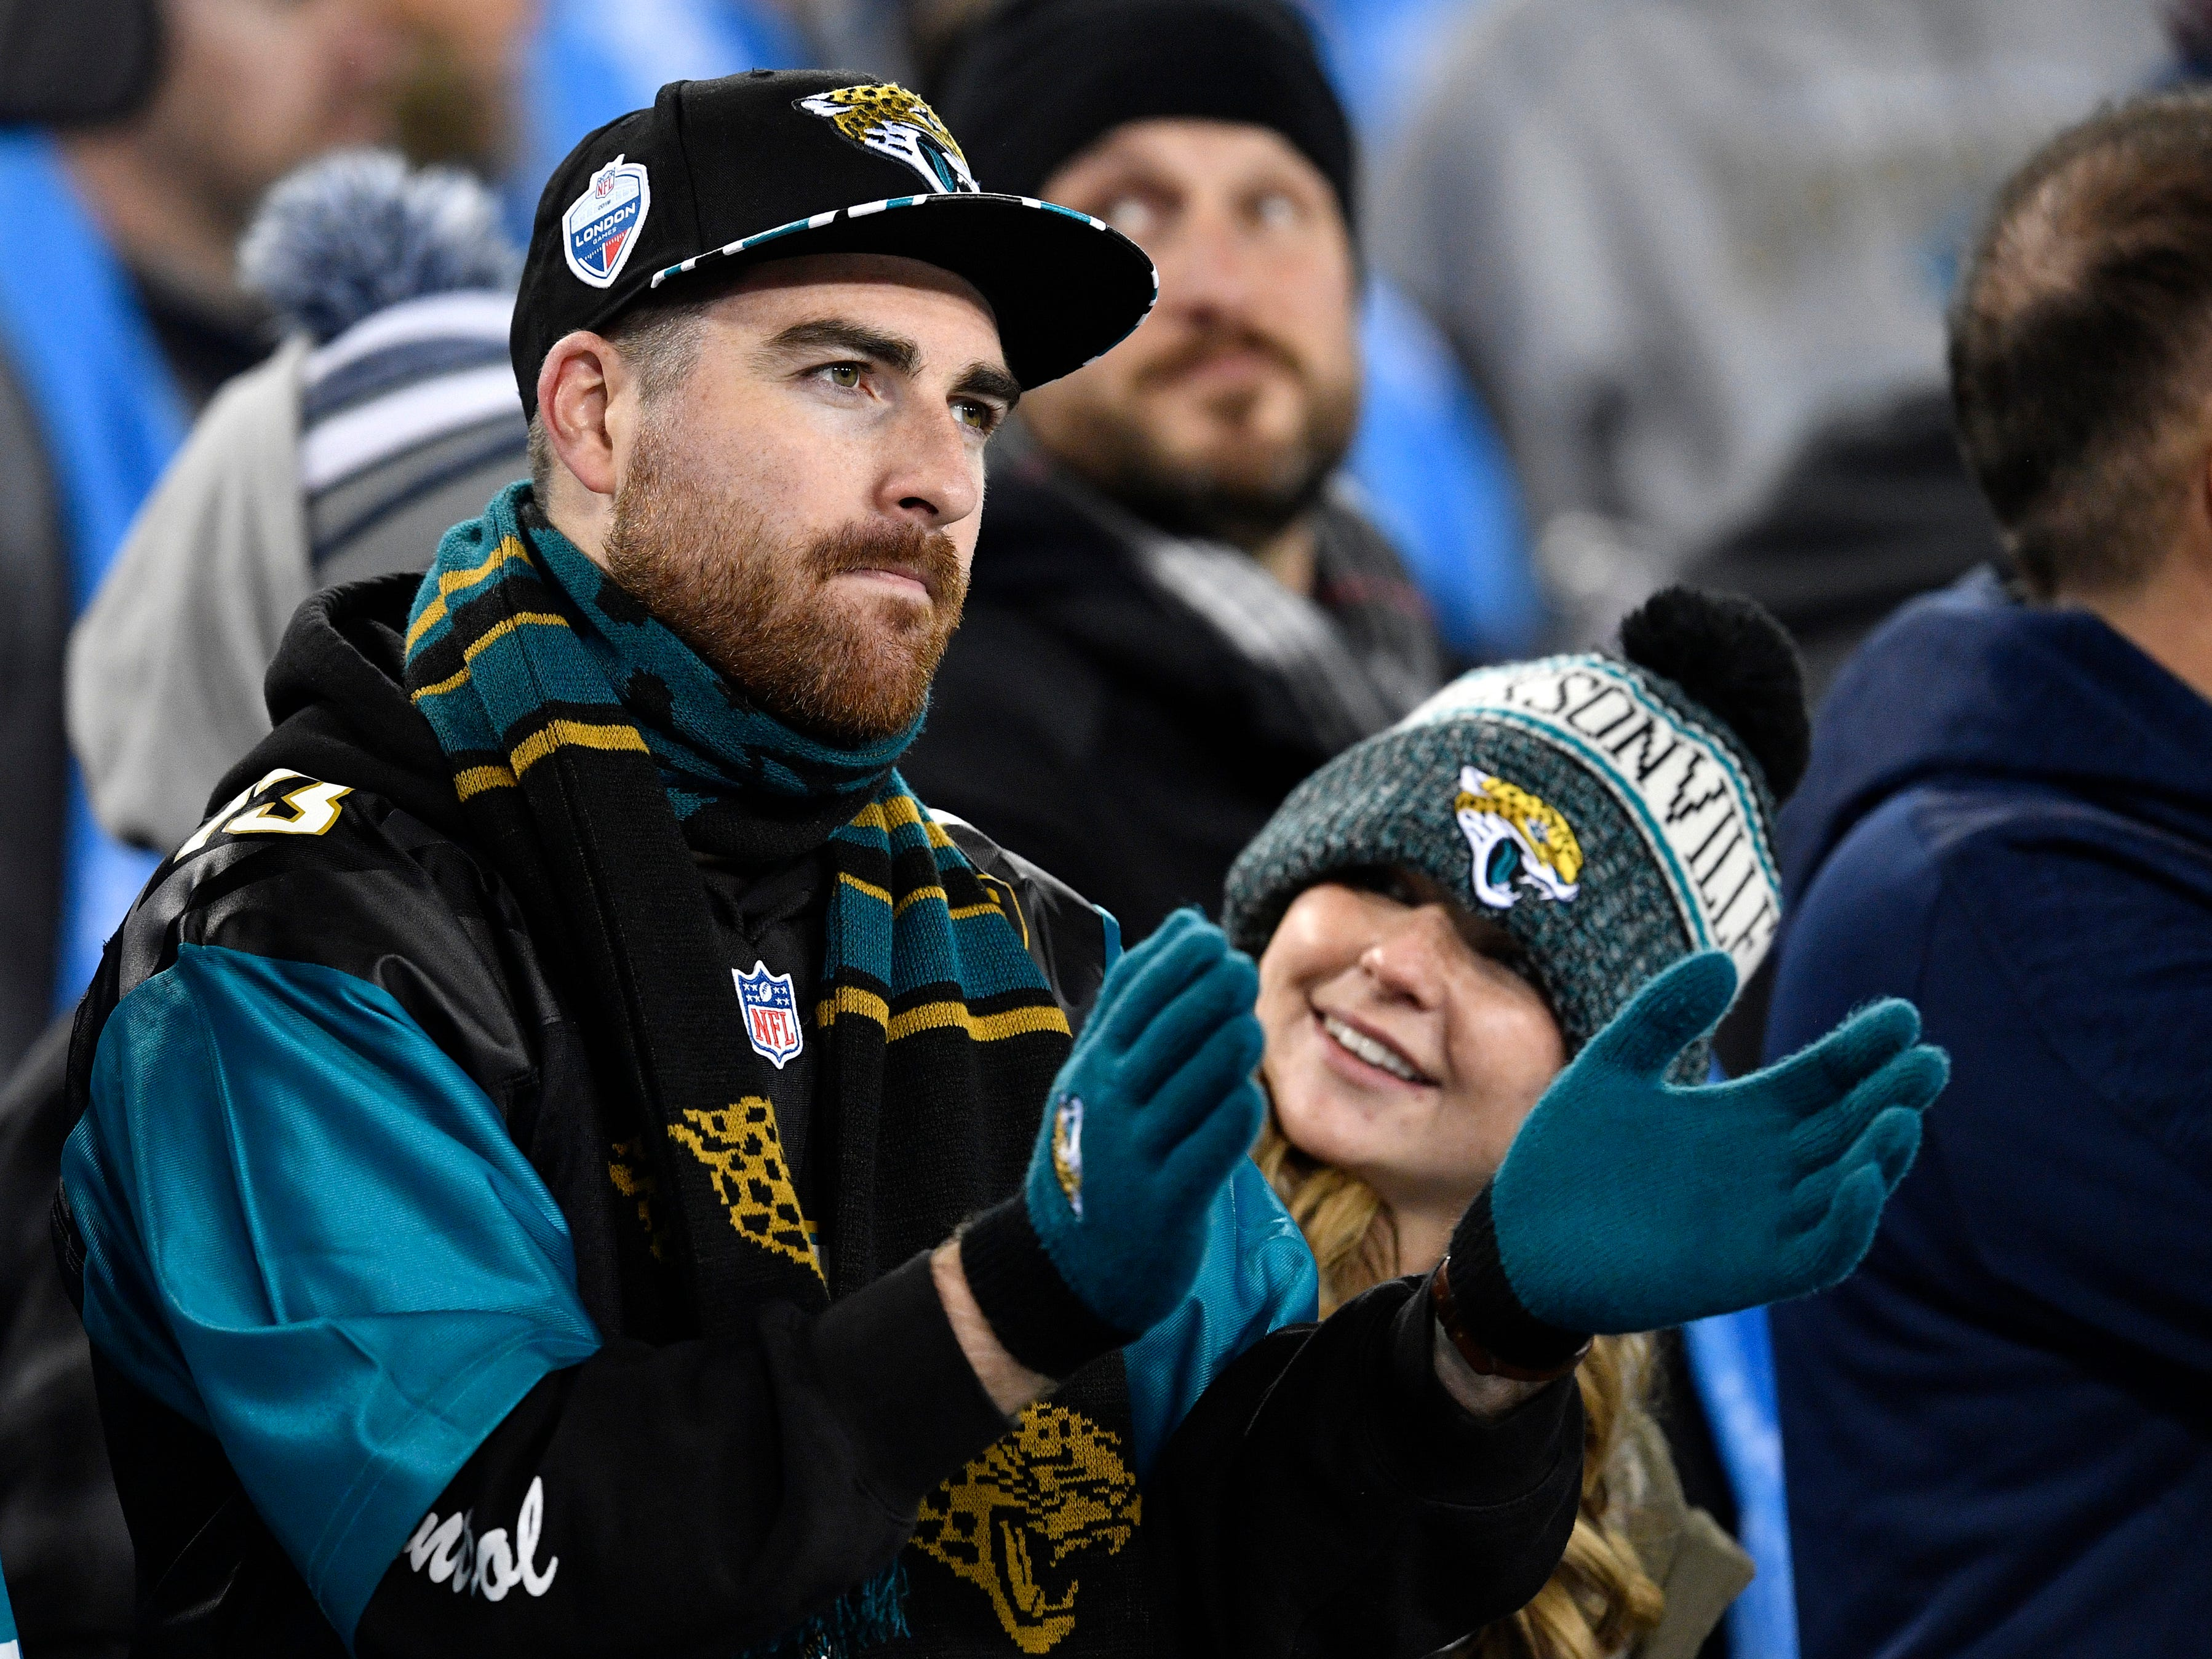 Jags fans watch the first half in the game against the Titans at Nissan Stadium Thursday, Dec. 6, 2018, in Nashville, Tenn.